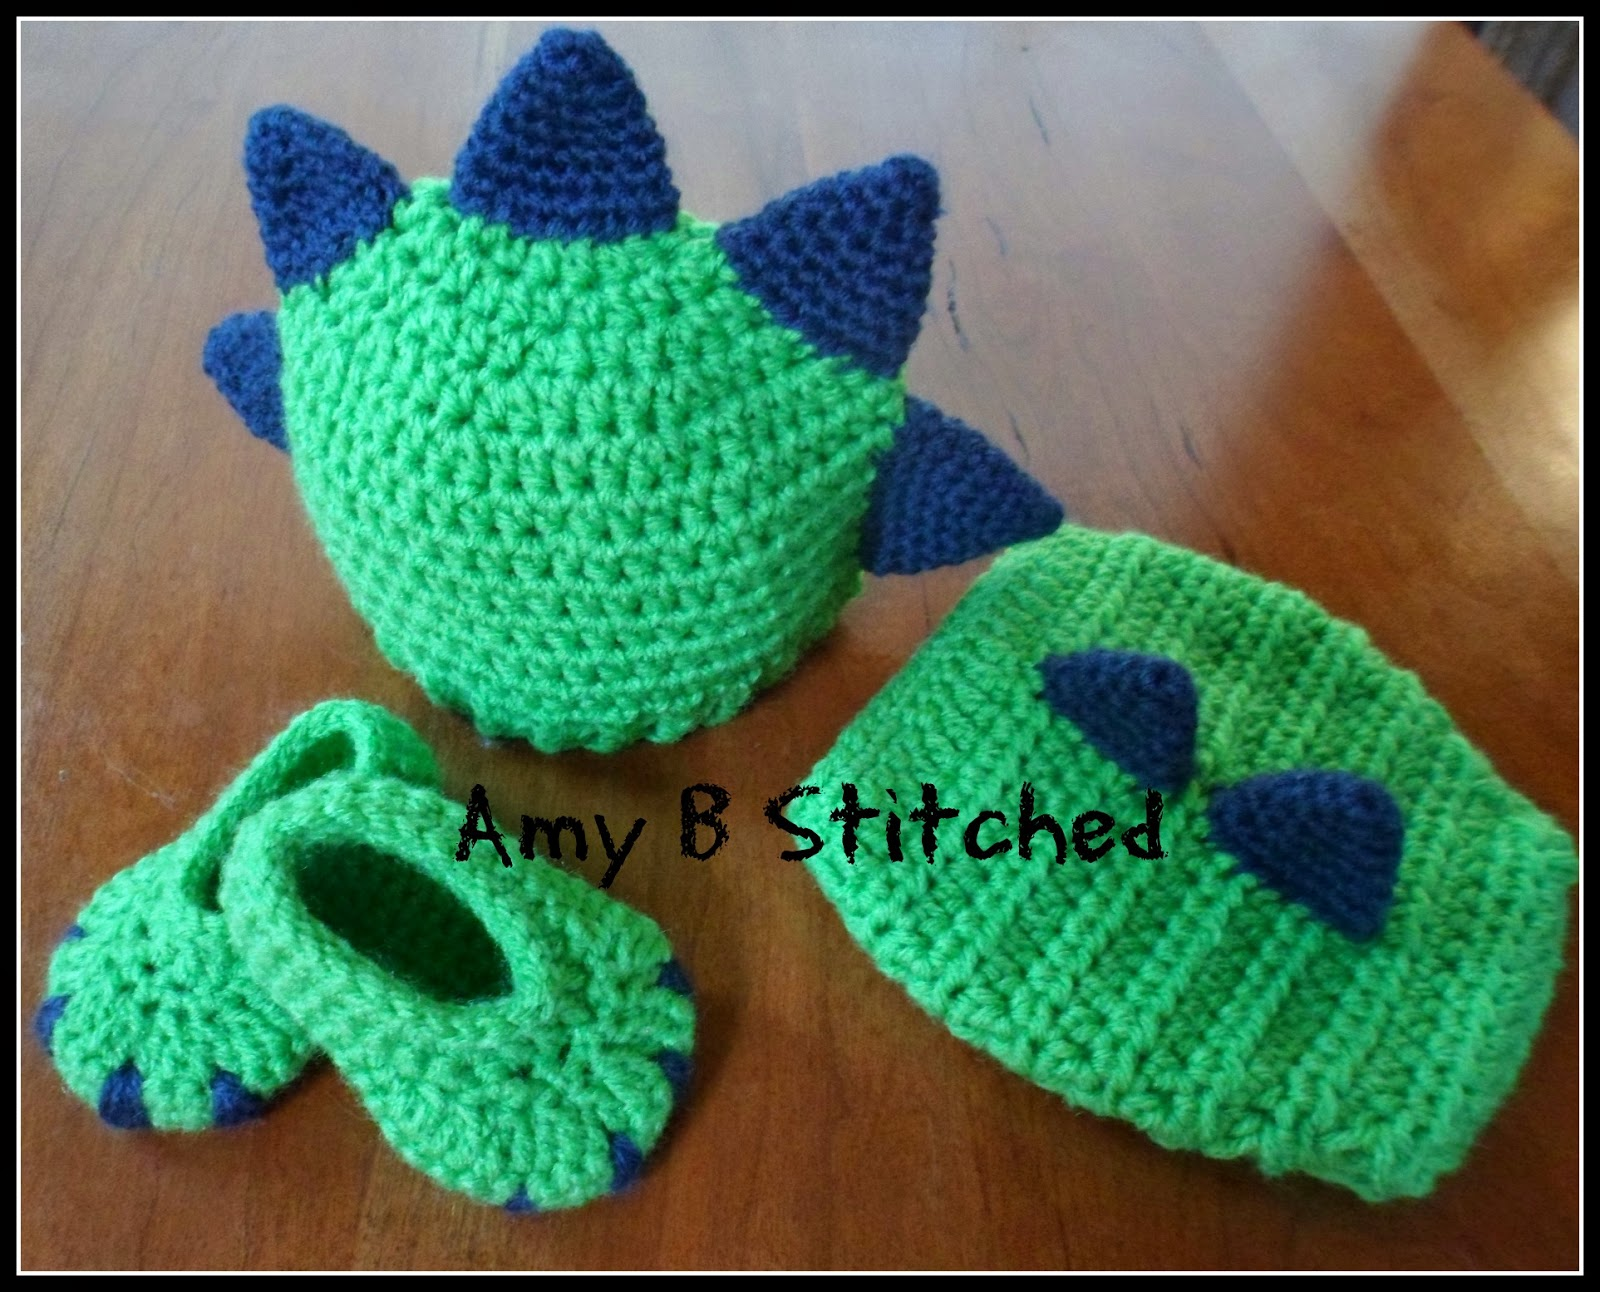 A stitch at a time for amy b stitched newborn dinosaur baby hat newborn dinosaur baby hat and diaper cover set and a pattern review for monsterdinosaur booties bankloansurffo Gallery